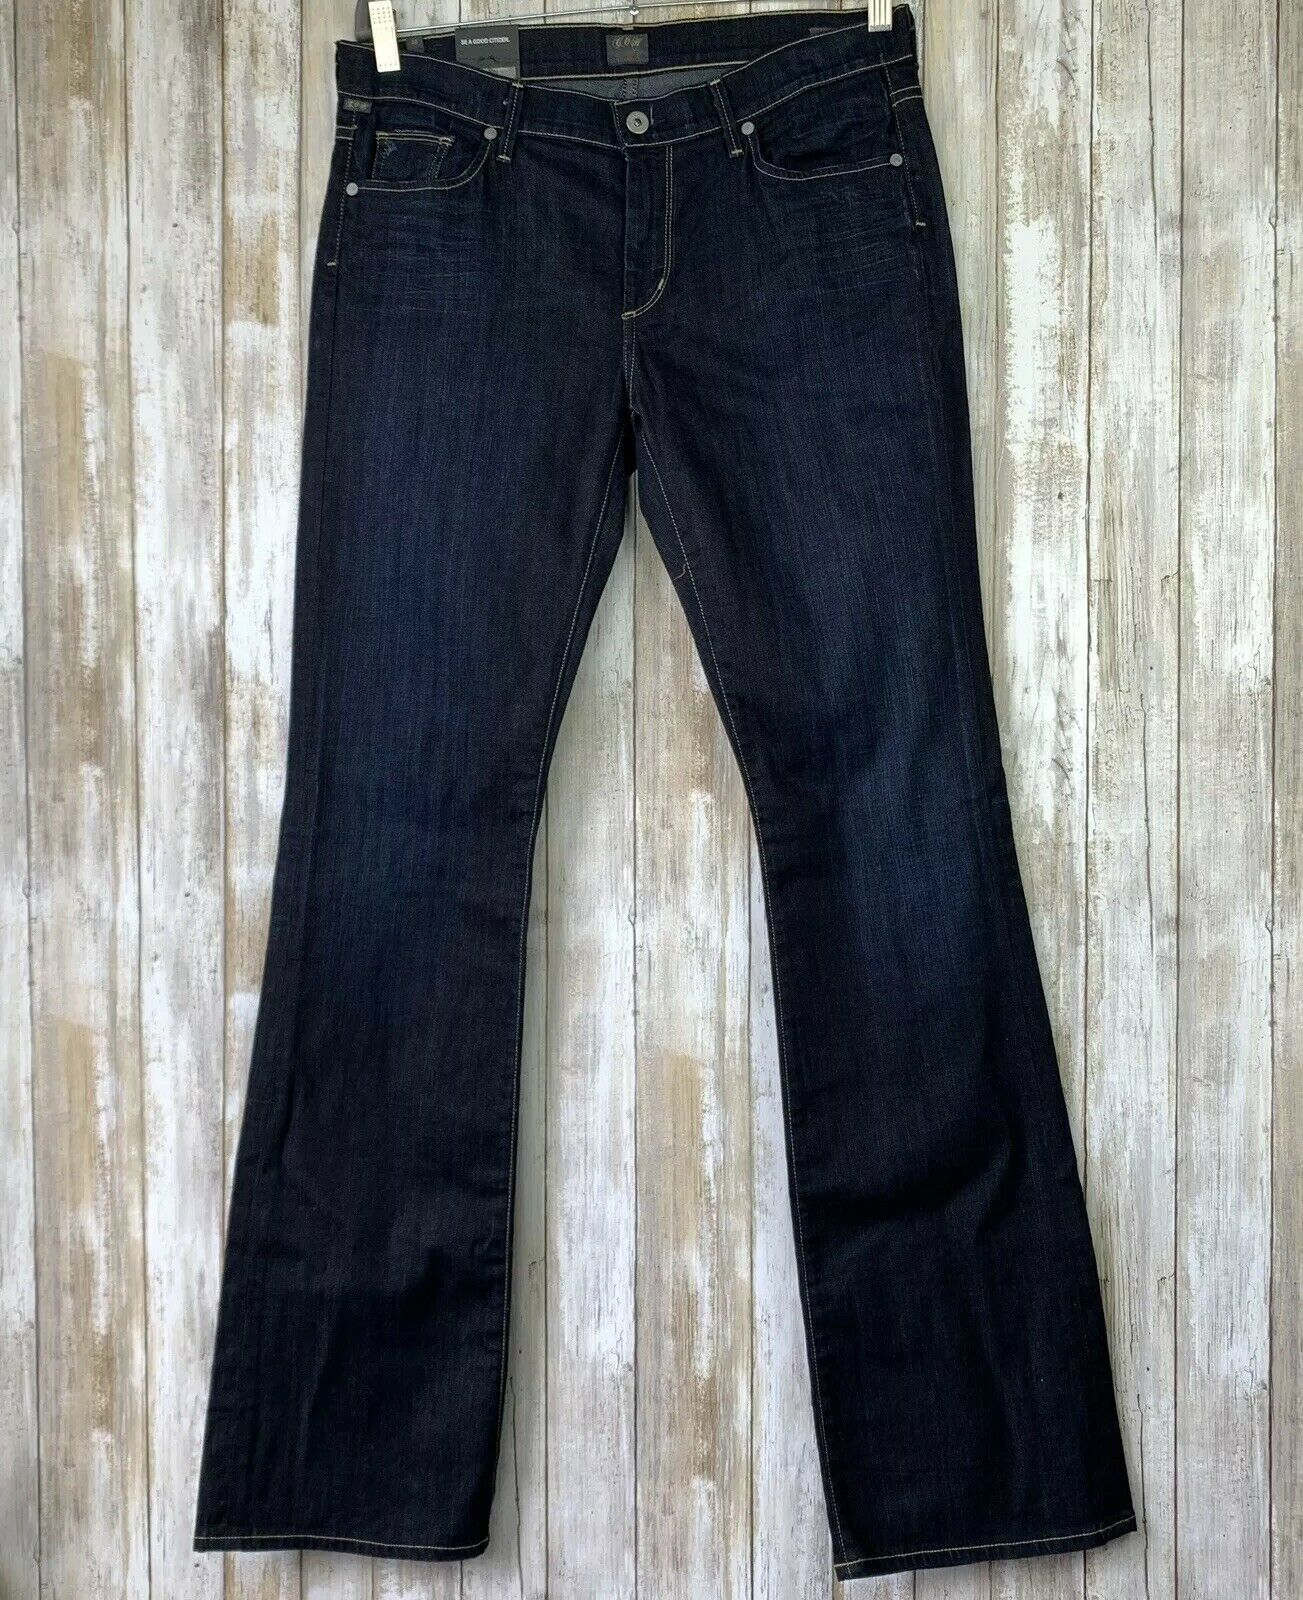 COH Citizens Of Humanity Amber Dark Wash High Waist Bootcut Jeans Size 32 NWT